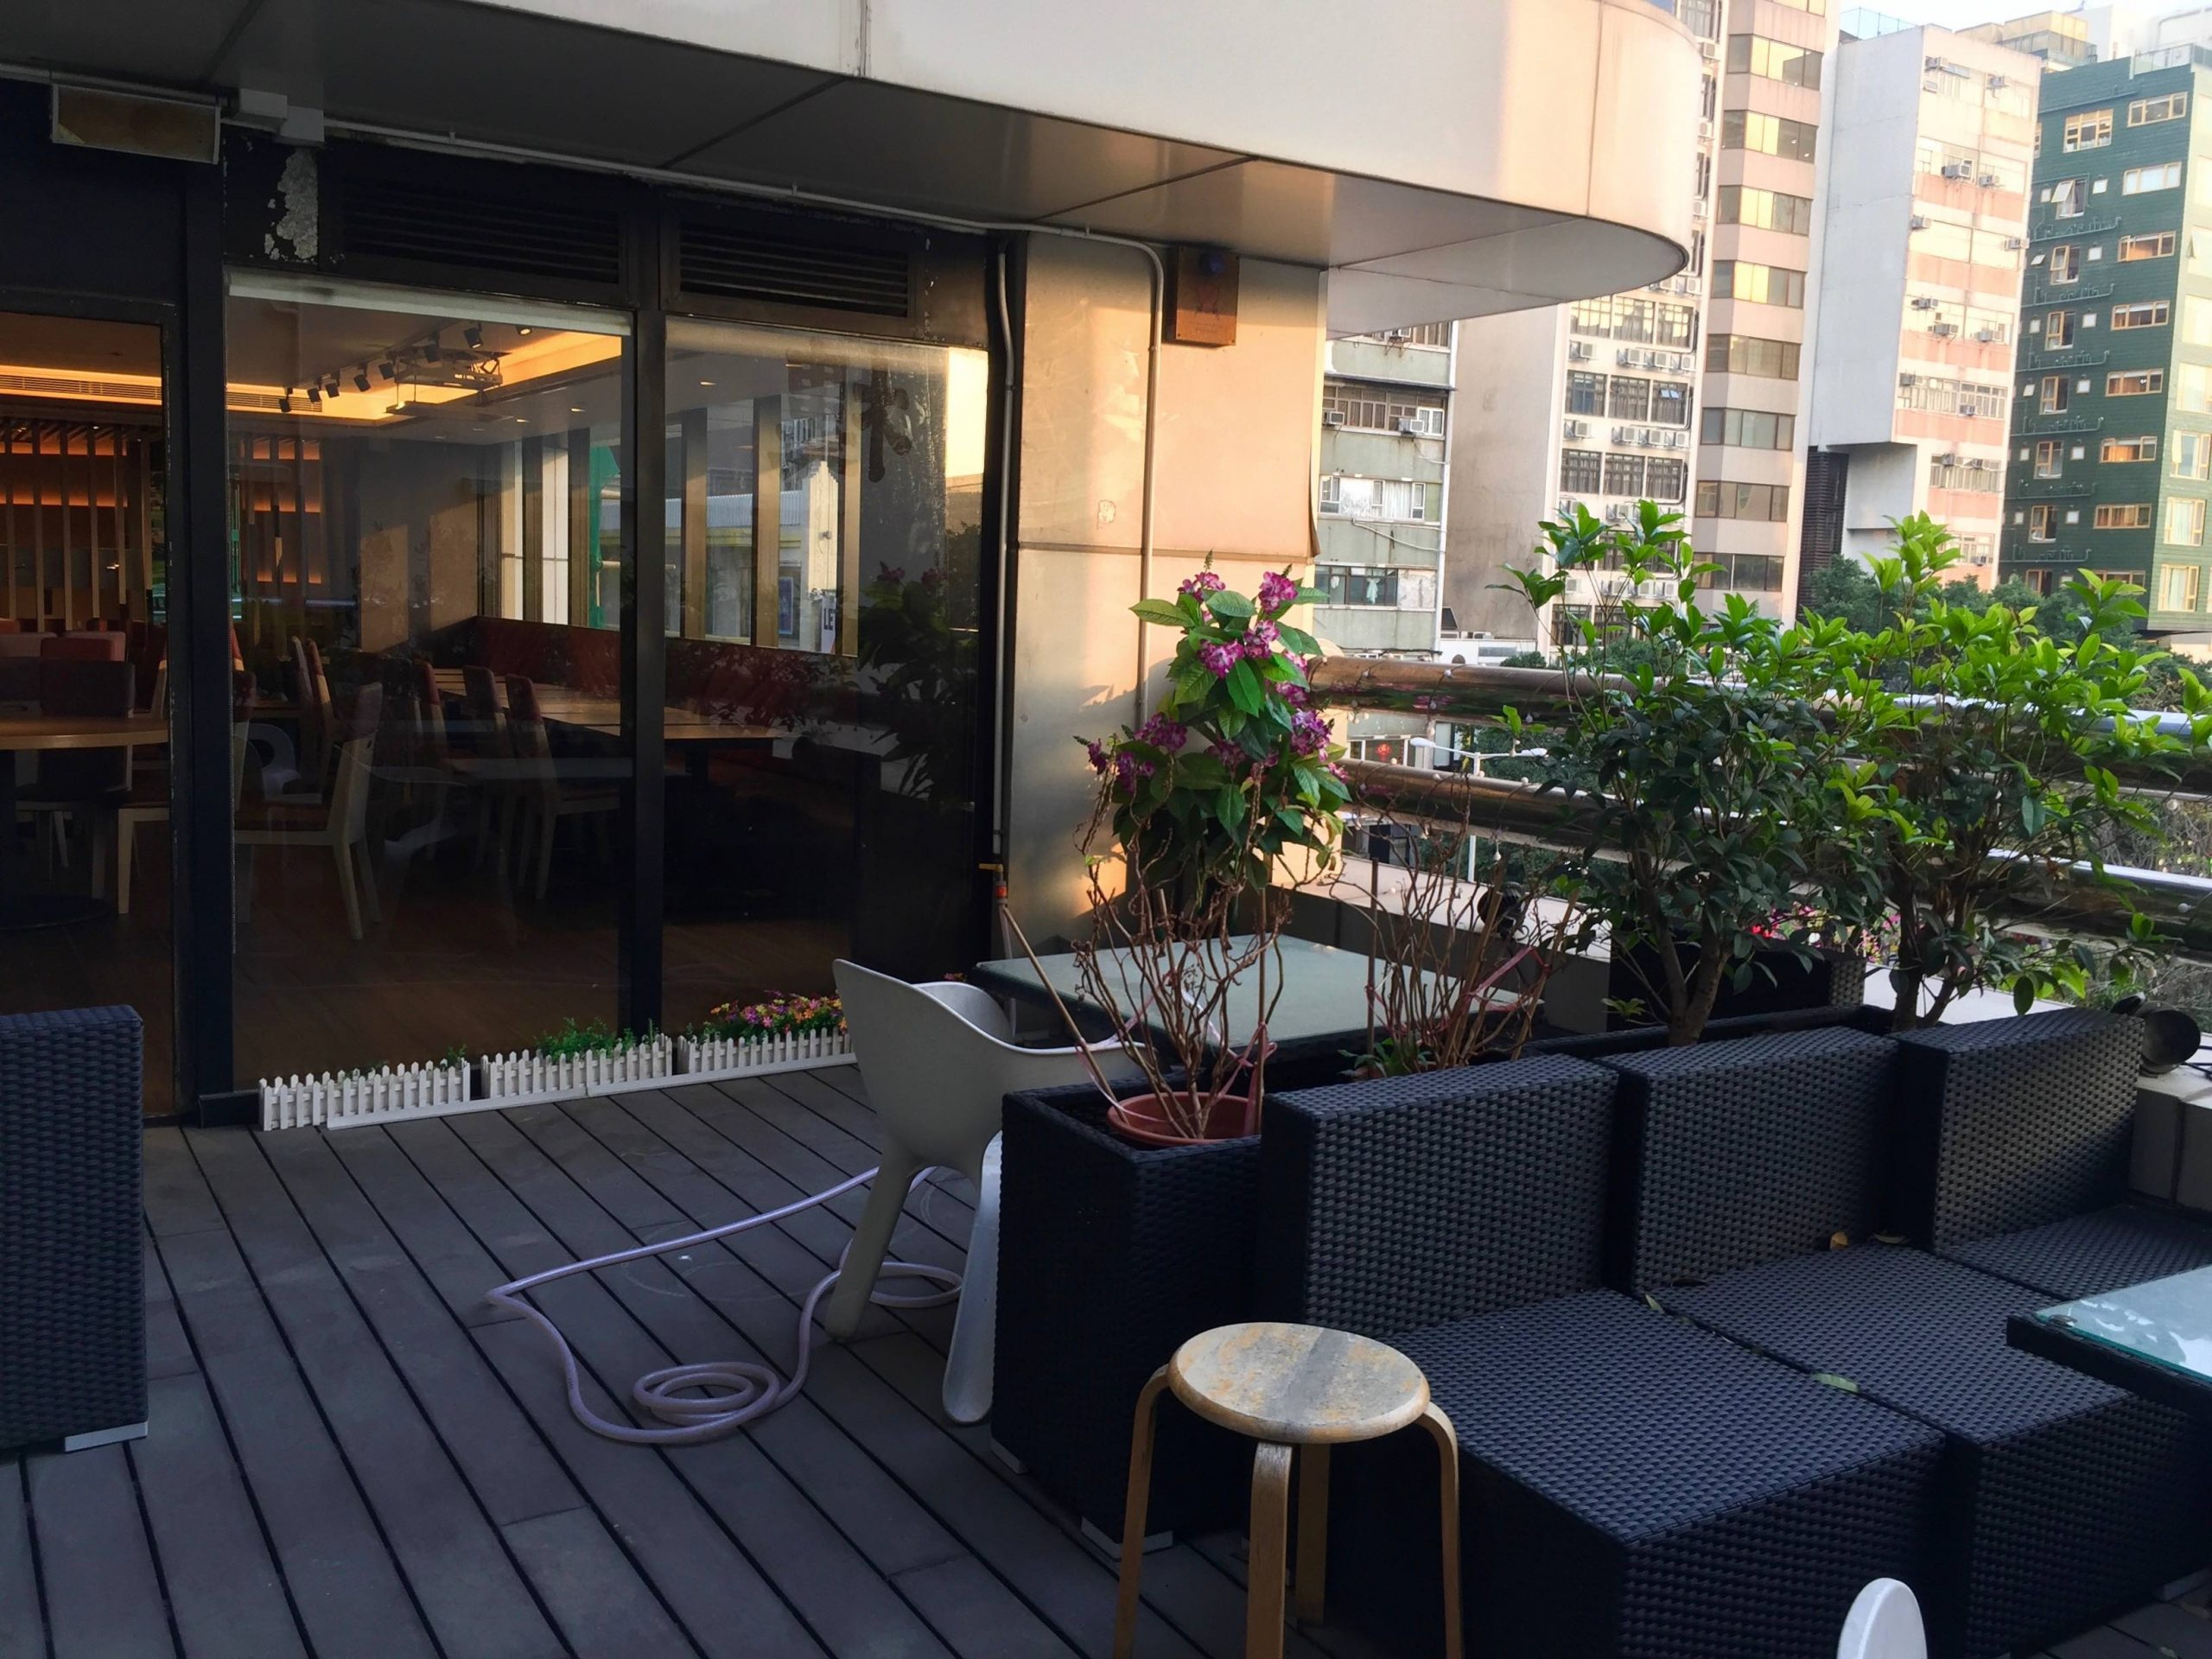 HK Nice Decor Restaurant for Rent with open seating area